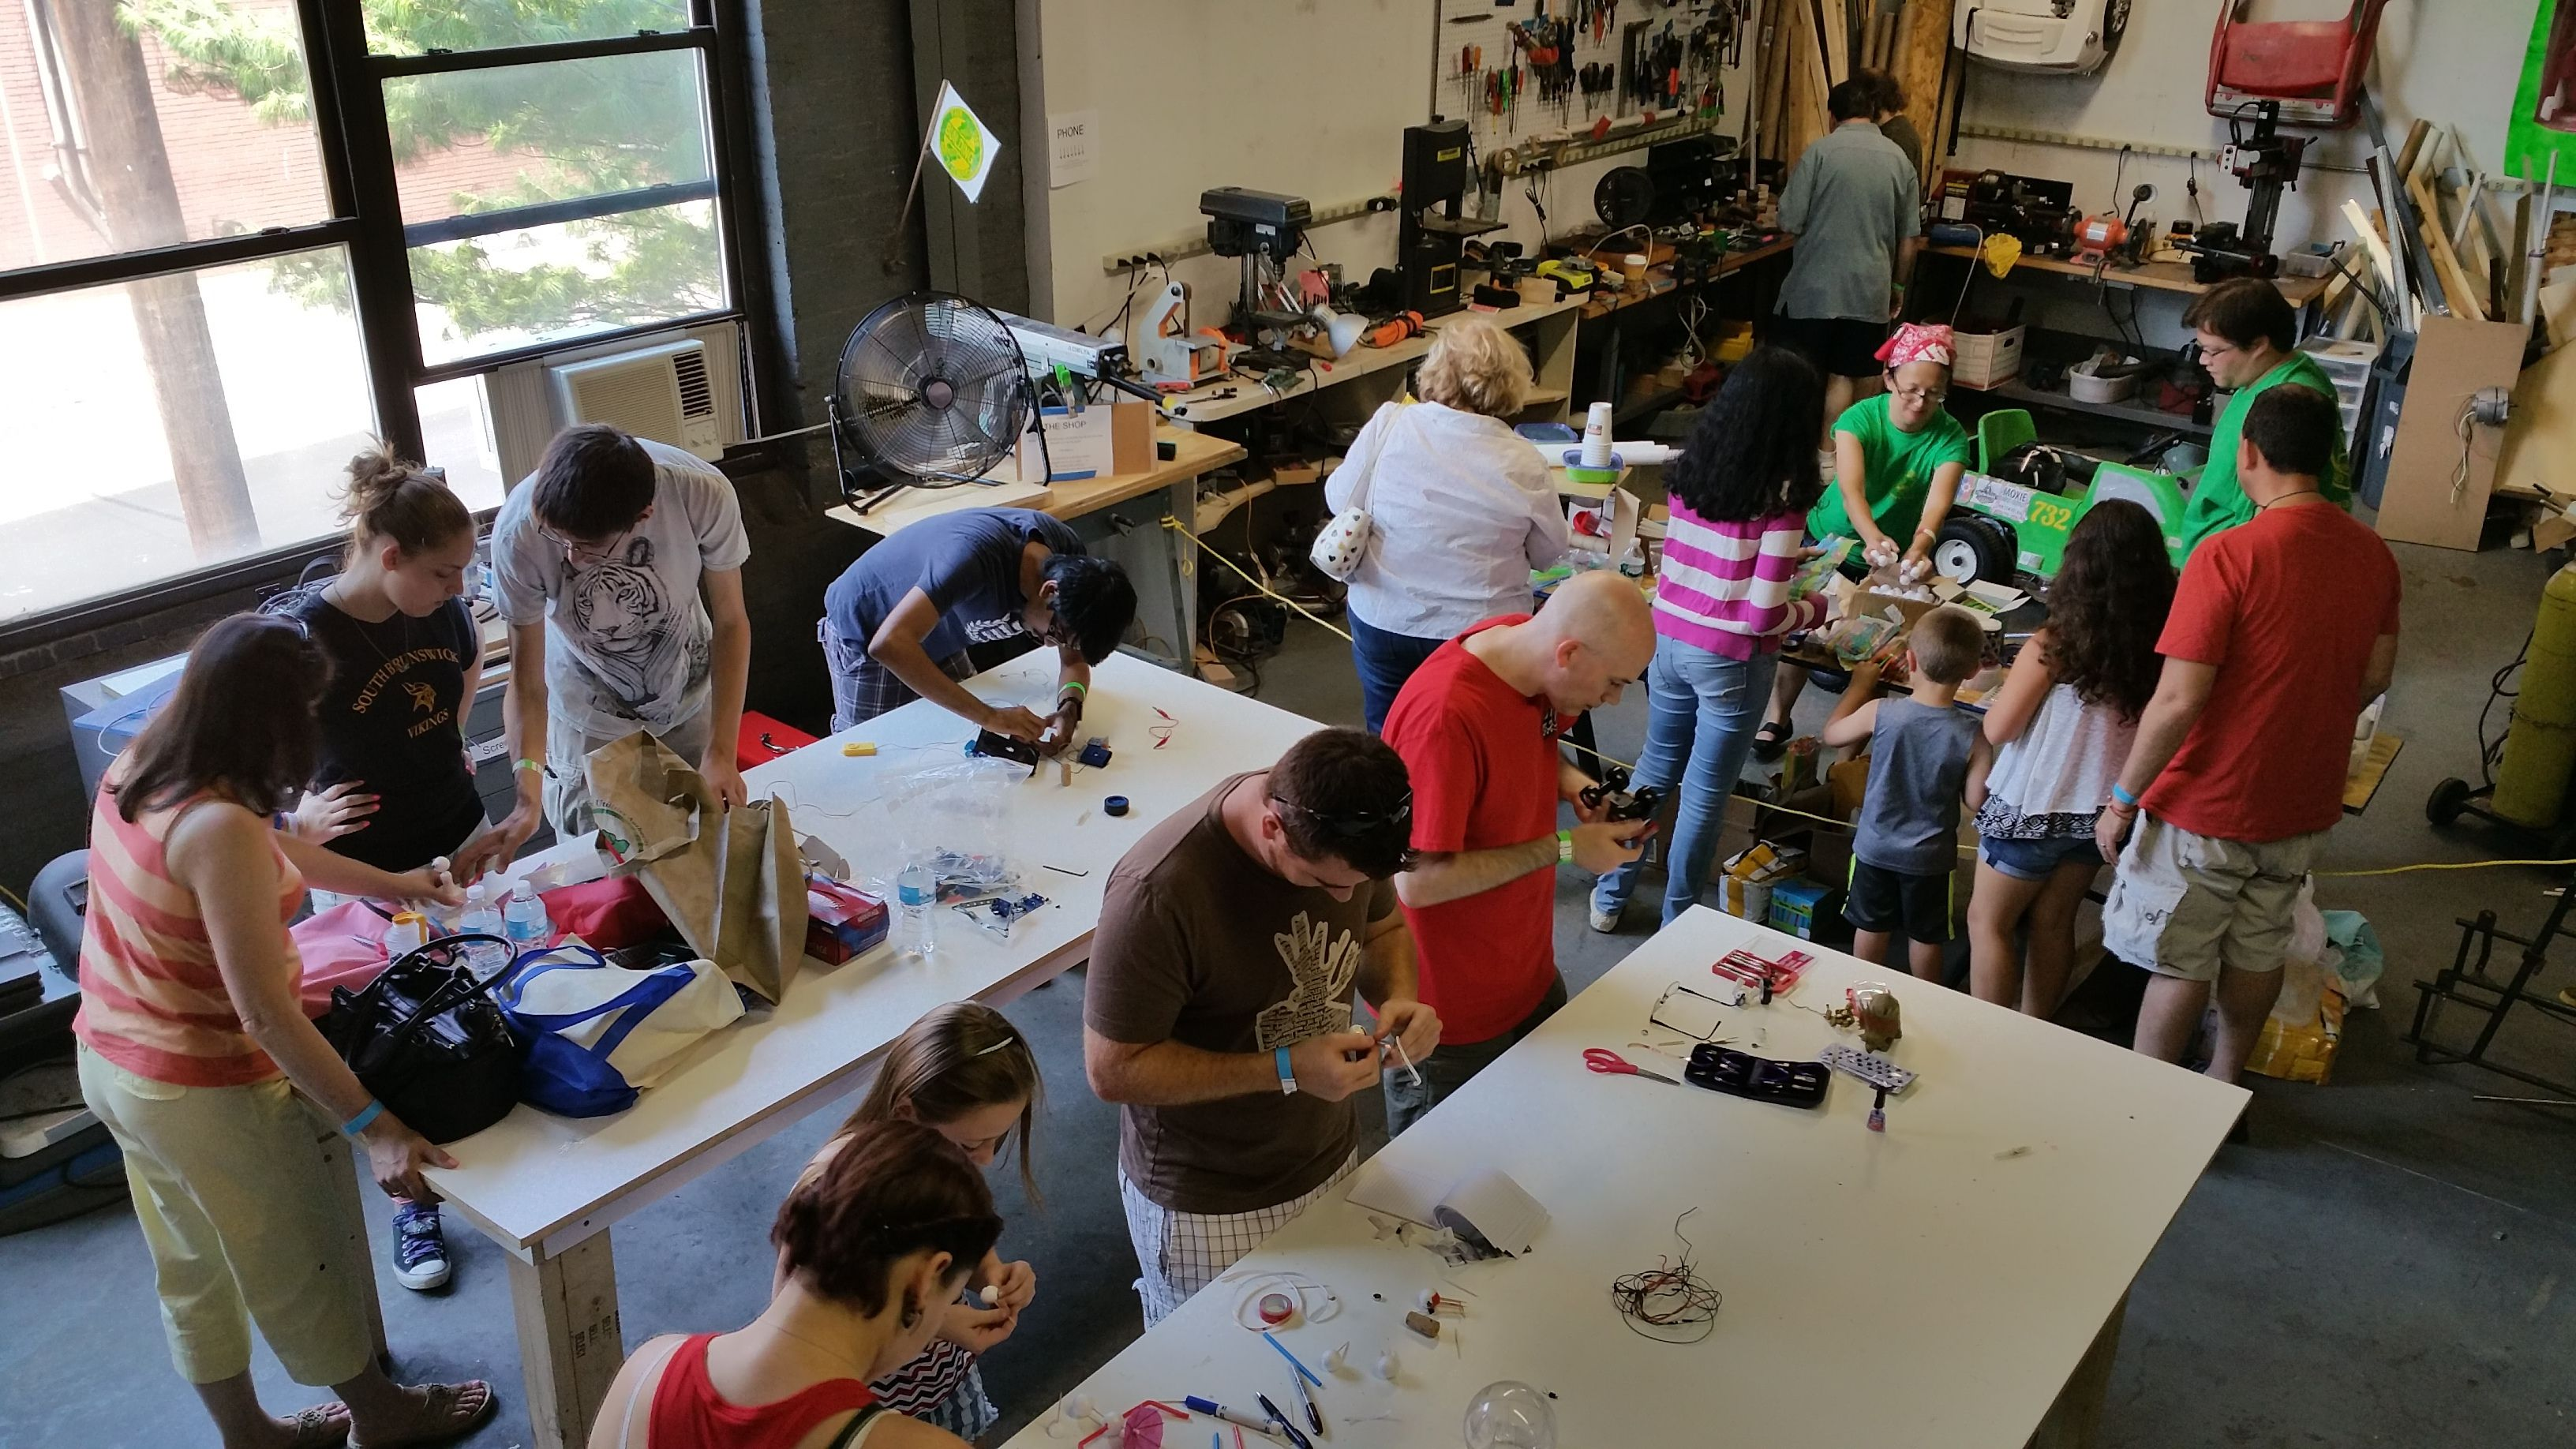 FUBAR Labs - Hackerspace in New Brunswick, NJ